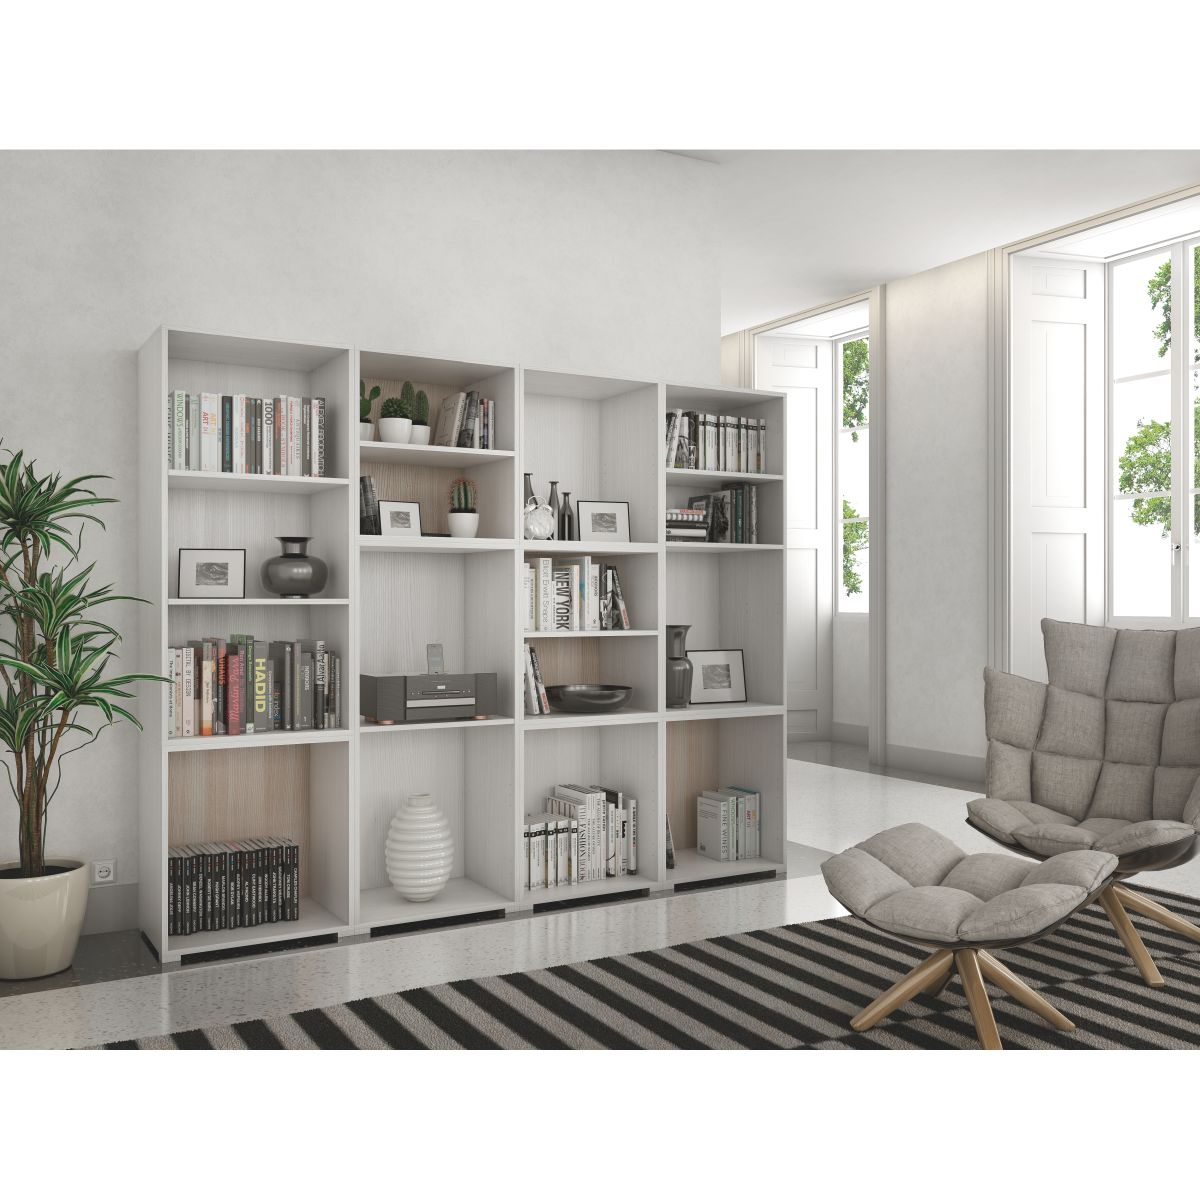 offerte giardino leroy merlin casetta giardino leroy. Black Bedroom Furniture Sets. Home Design Ideas